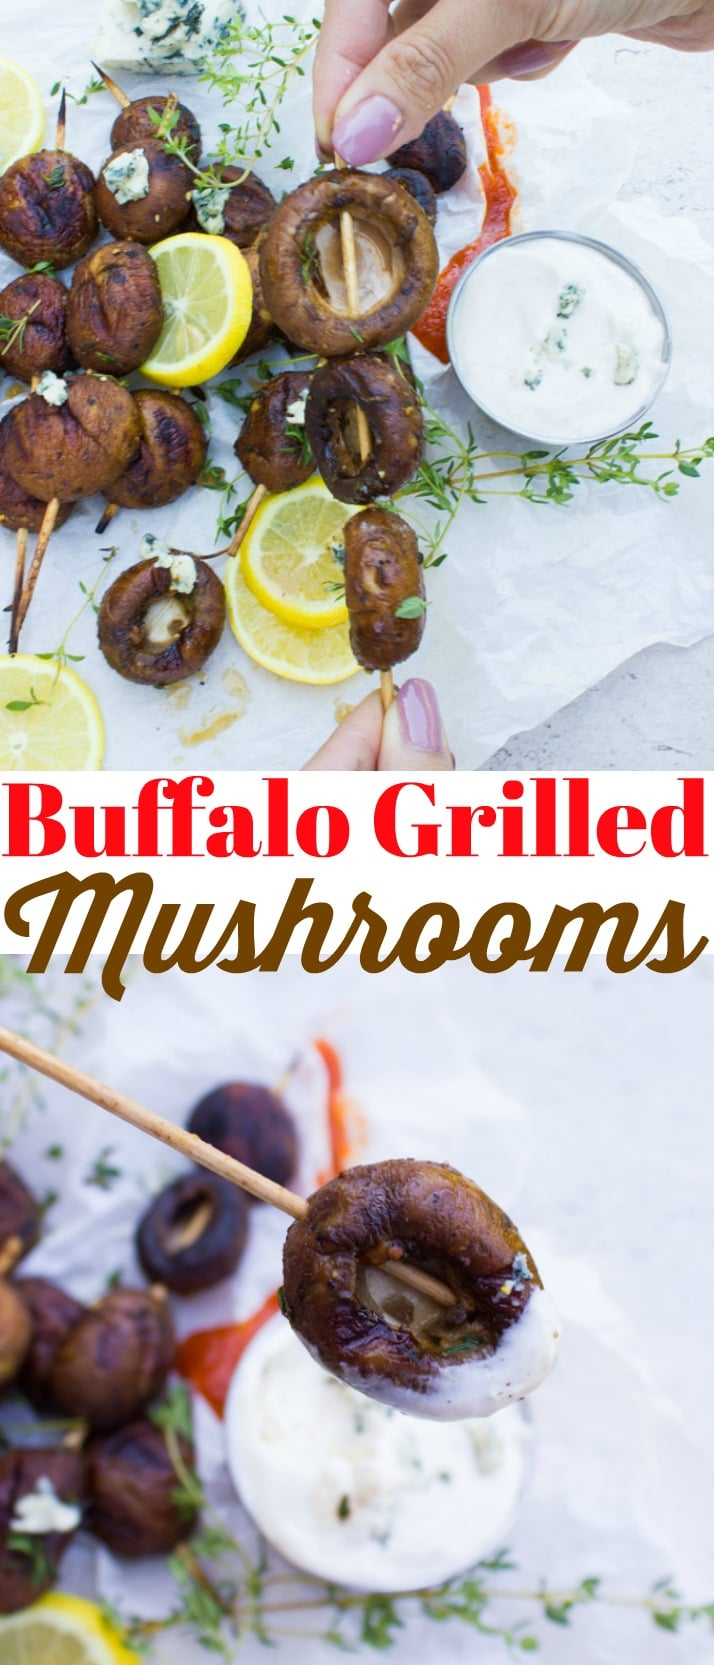 These delicious Buffalo Grilled Mushrooms with Blue Cheese Sauce are the best grilled mushrooms you'll ever make! Tossed in a luscious spicy, zesty and buttery sauce, these mushrooms are packed with flavor!